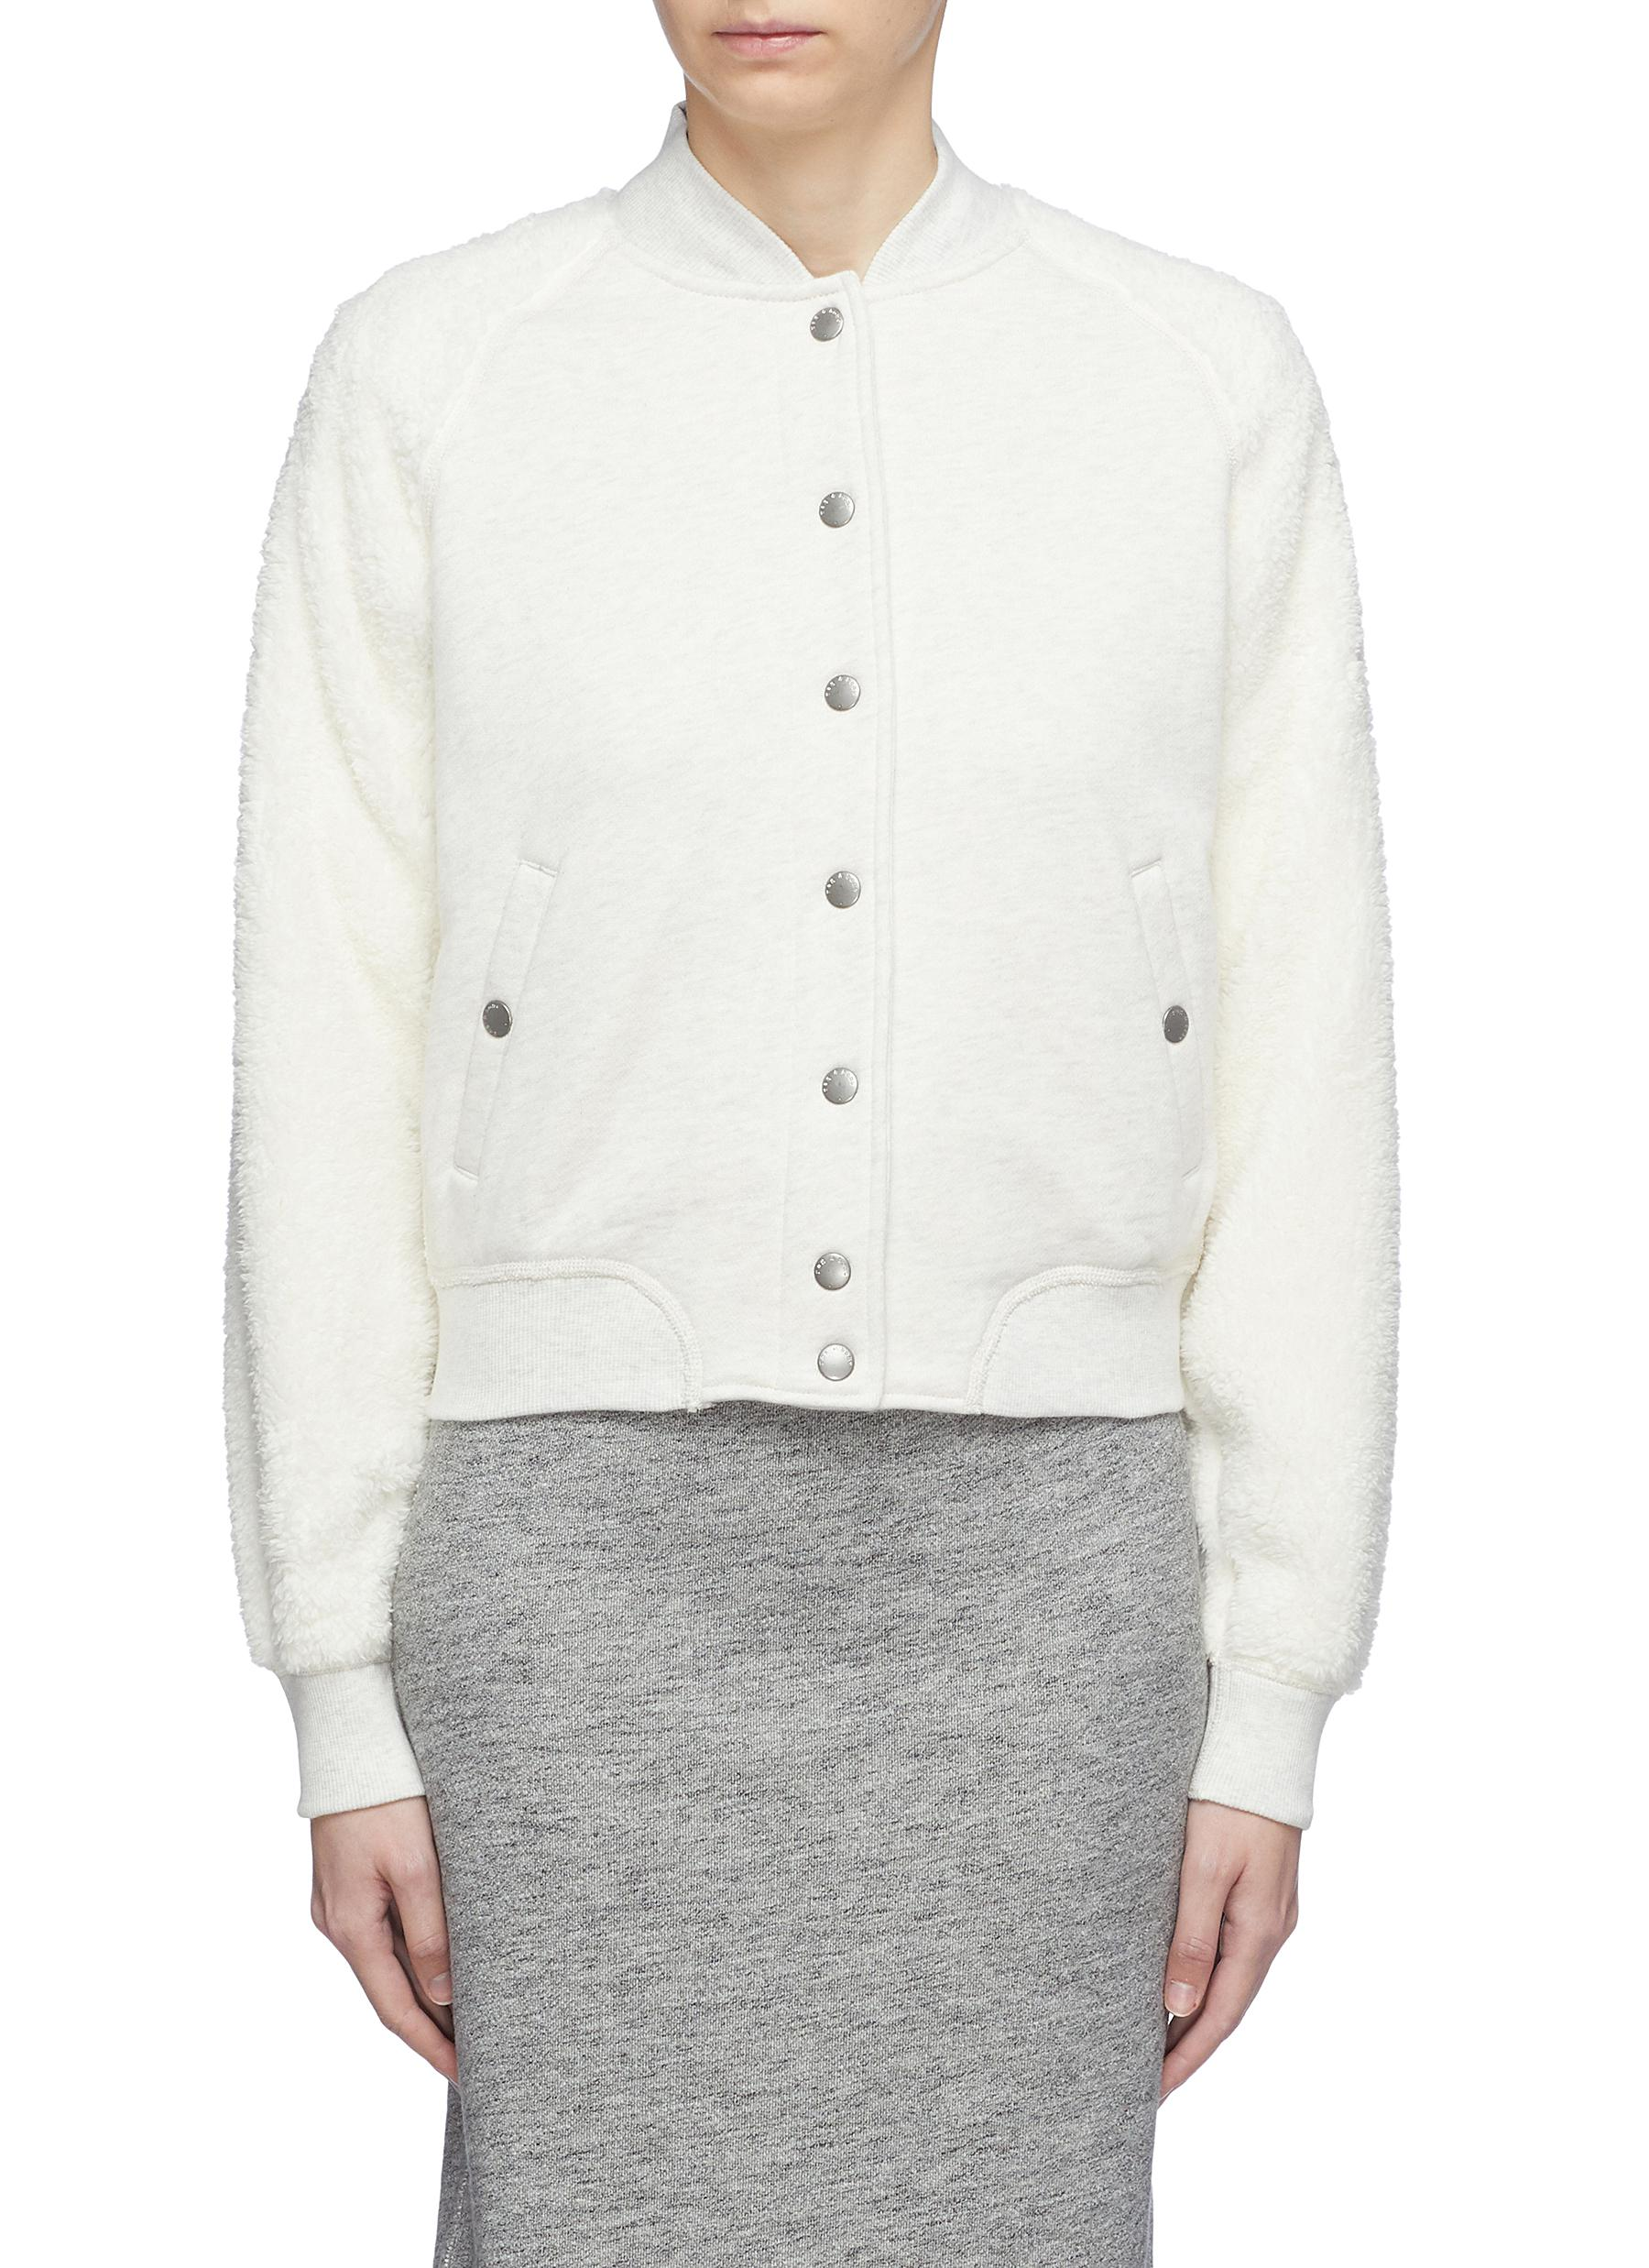 Faux fur sleeve bomber jacket by Rag & Bone/Jean